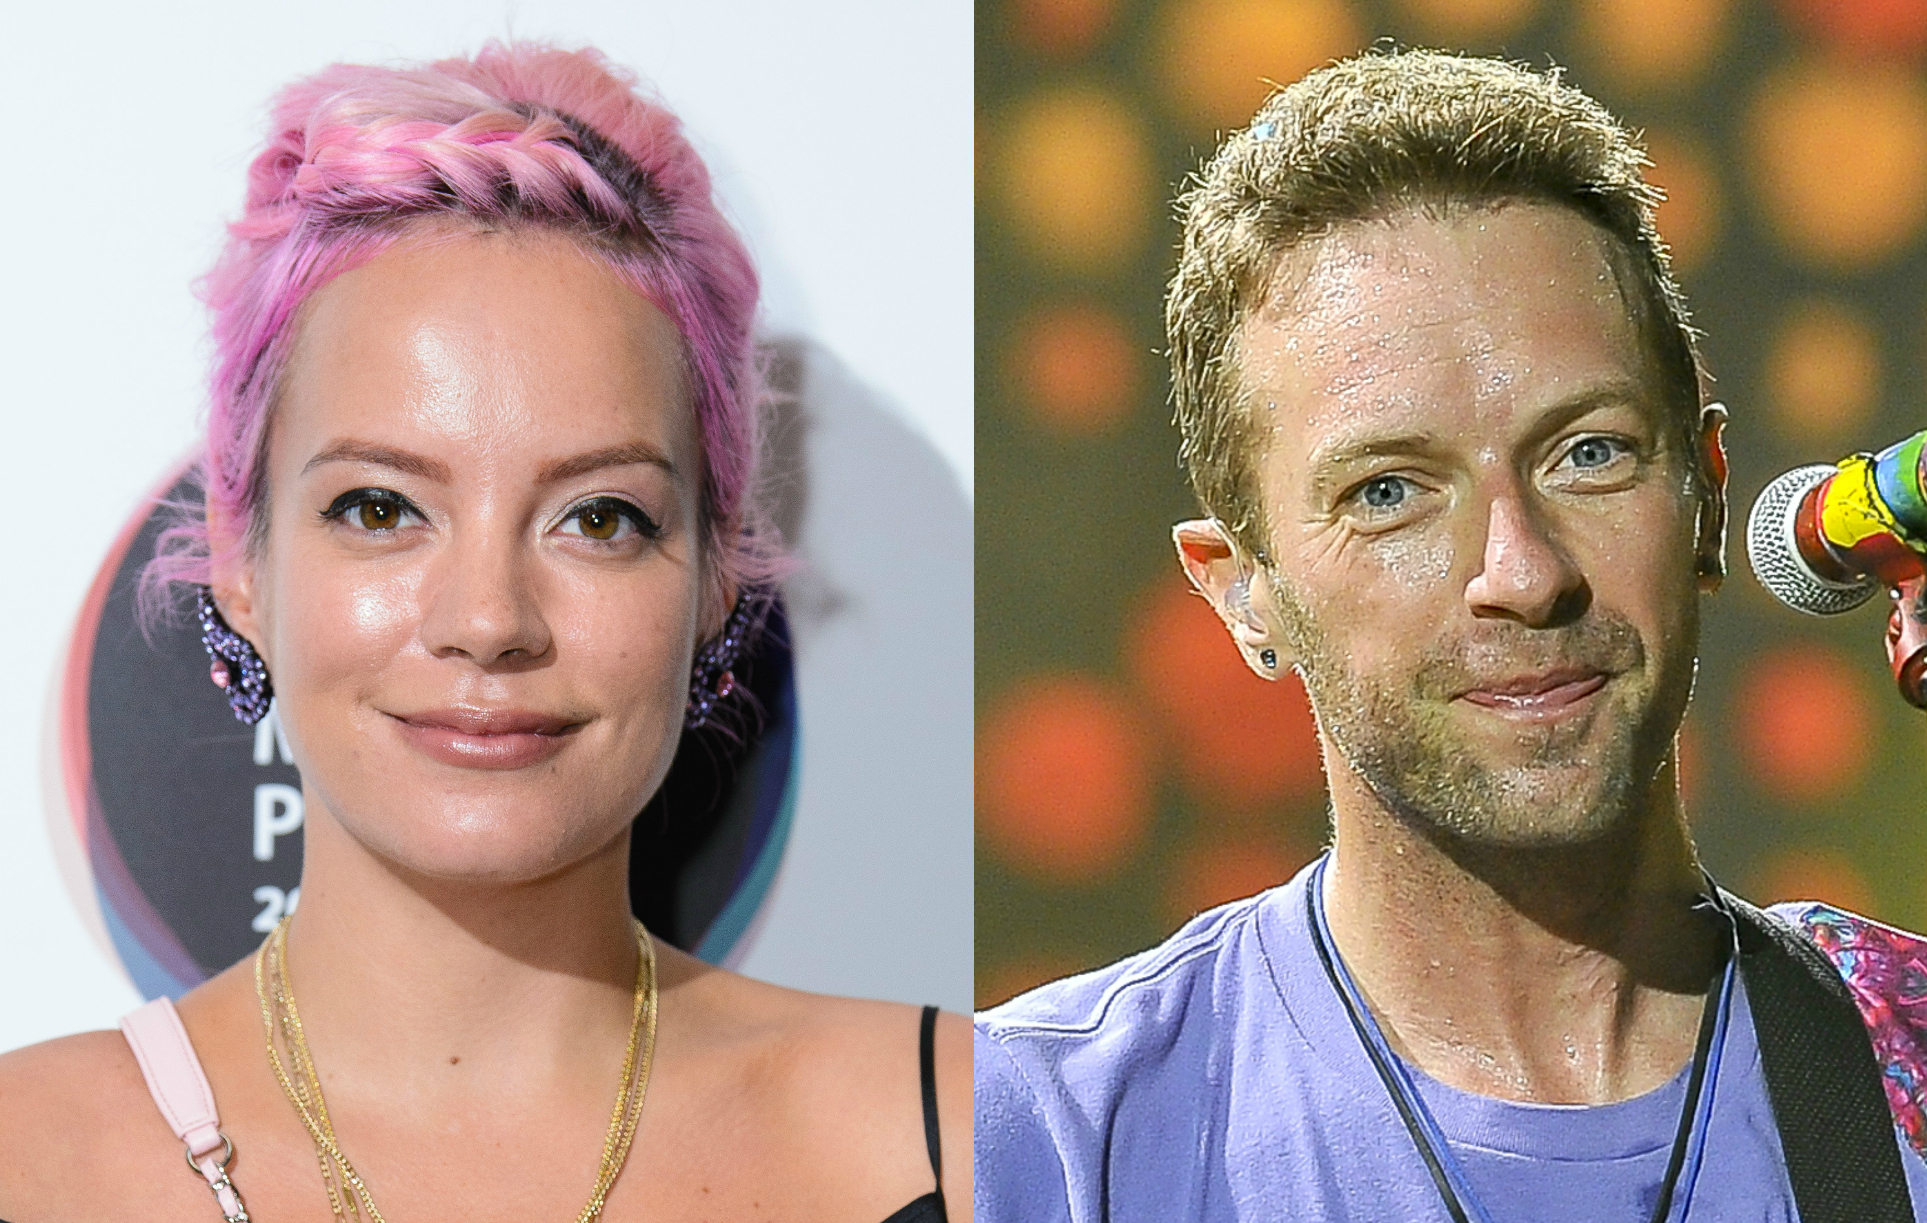 NME Festival blog: Lily Allen reveals that Coldplay's Chris Martin staged an intervention over her drug addiction